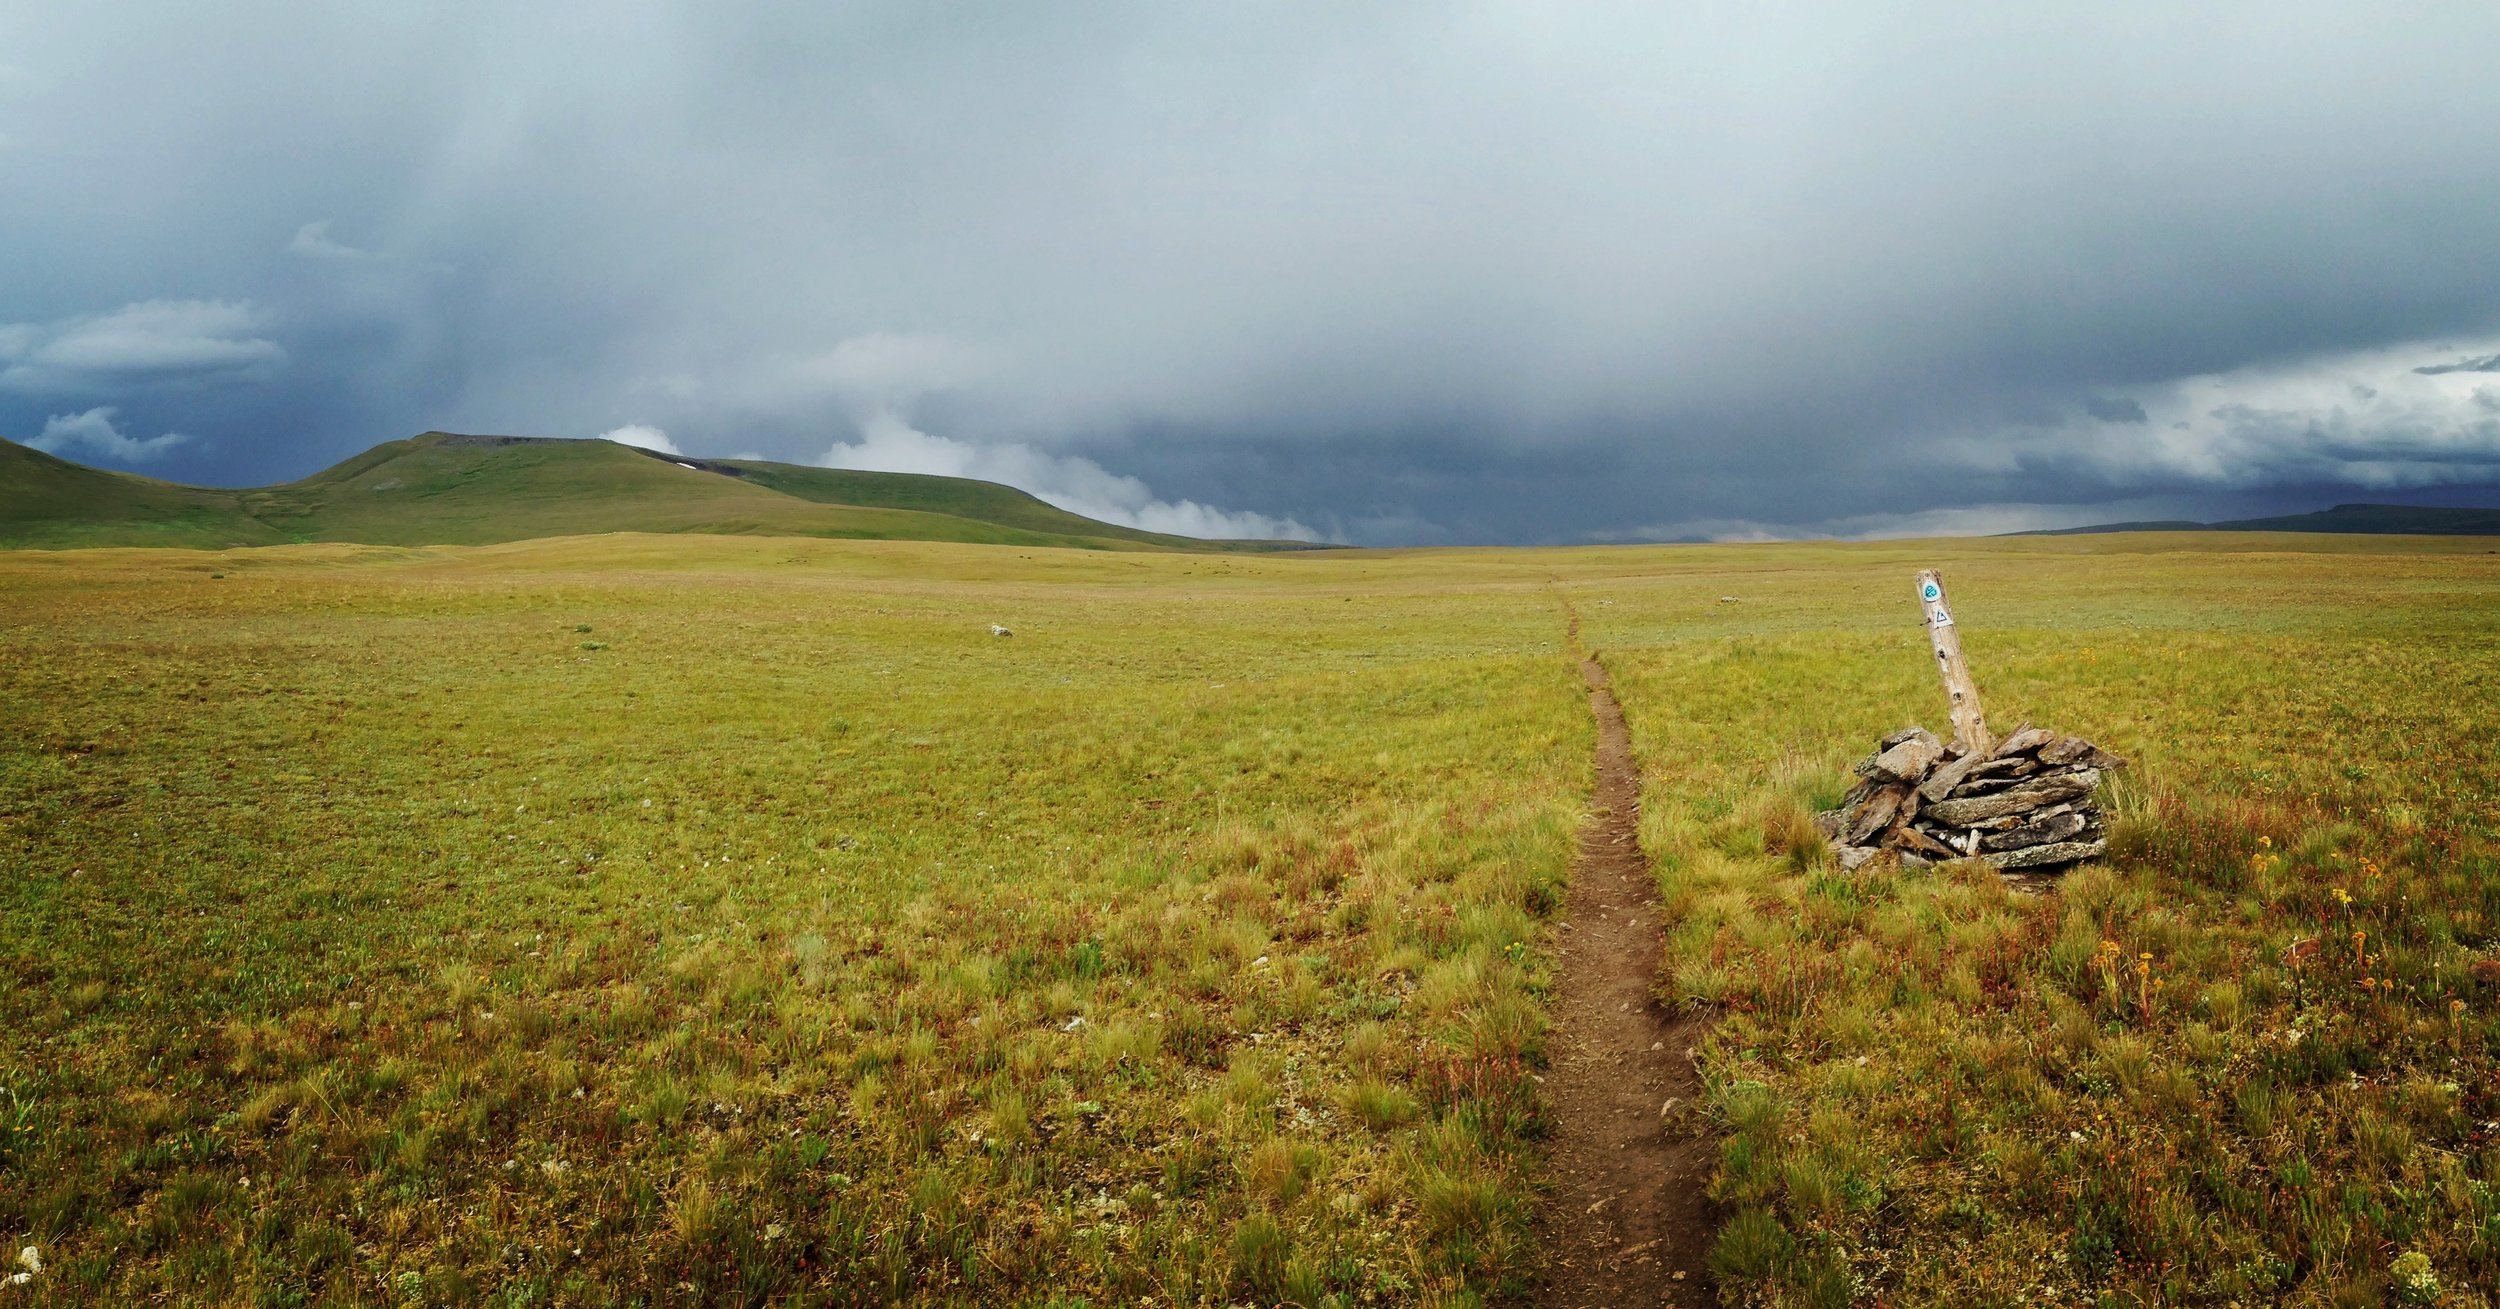 Day 26:  This shot is looking back at a terrifying storm cell that caught me exposed on top of Snow Mesa, a flat 4-mile expanse above 12,000 feet. I had to duck into a dirt washout, and hunker under an overhang of tundra grasses, to ride out the storm.  Daily mileage: 18.7. Total miles: 371.9.